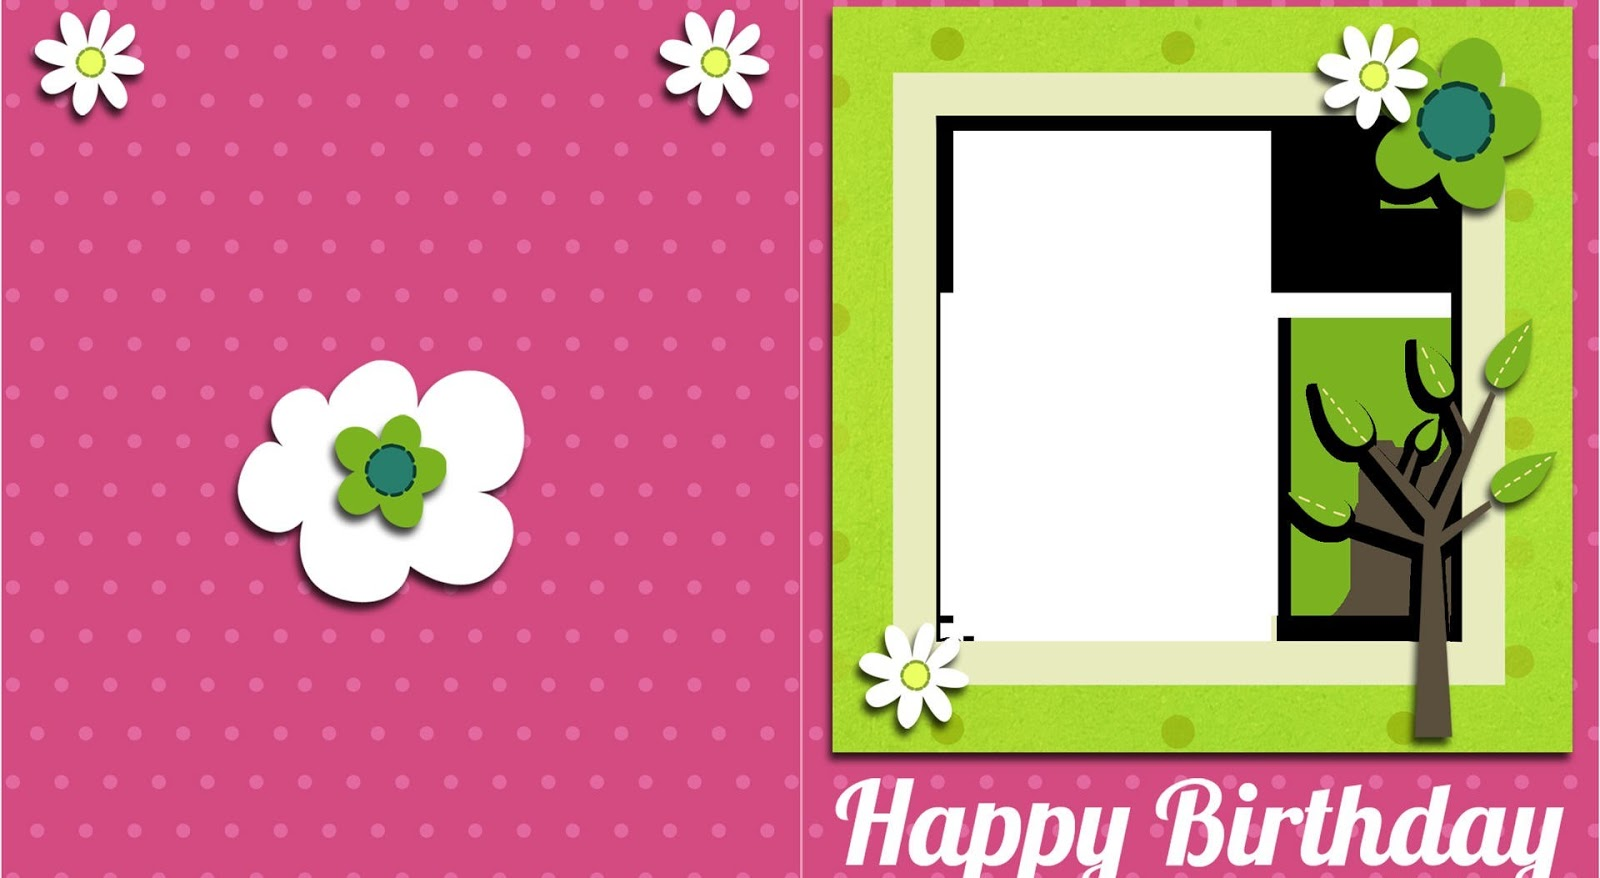 Birthday card download dawaydabrowa wish you a very happy birthday words texted wishes card images m4hsunfo